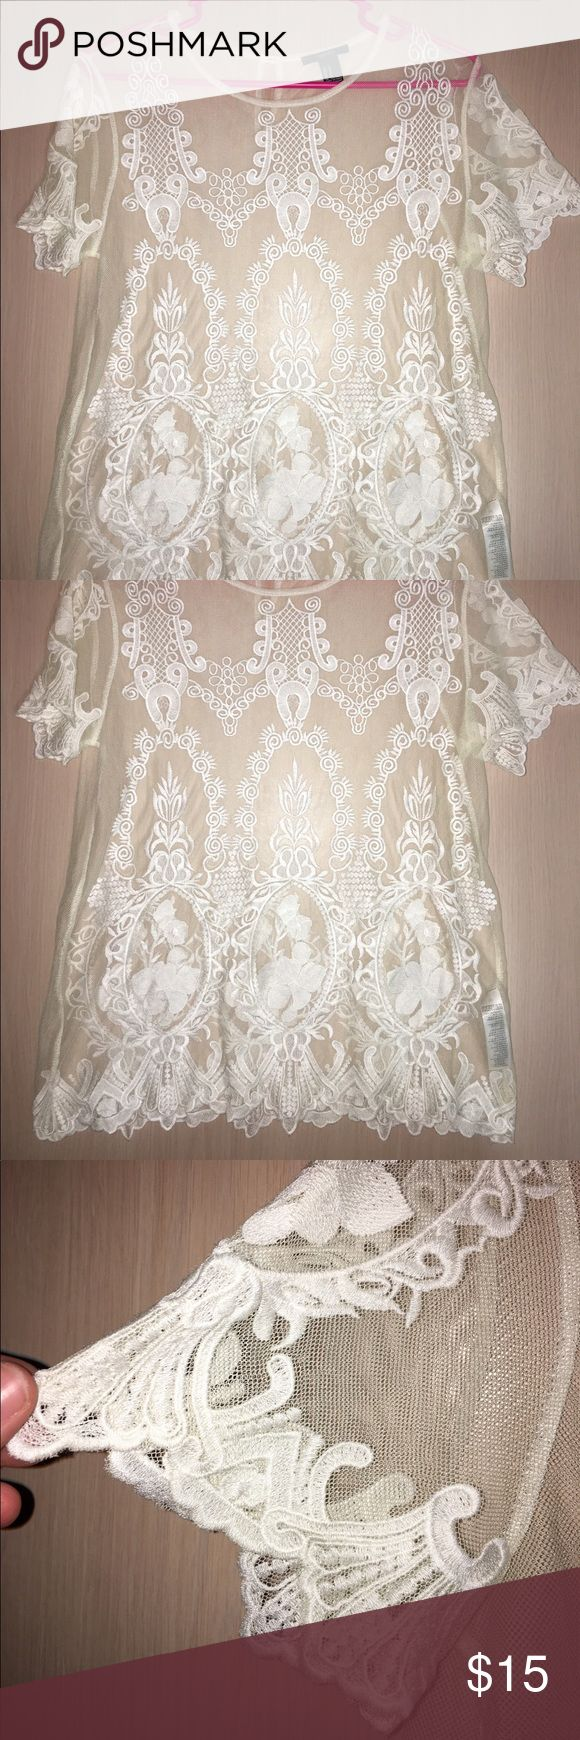 Forever21 cream lace top Very good condition, see through all over lace top Forever 21 Tops Blouses